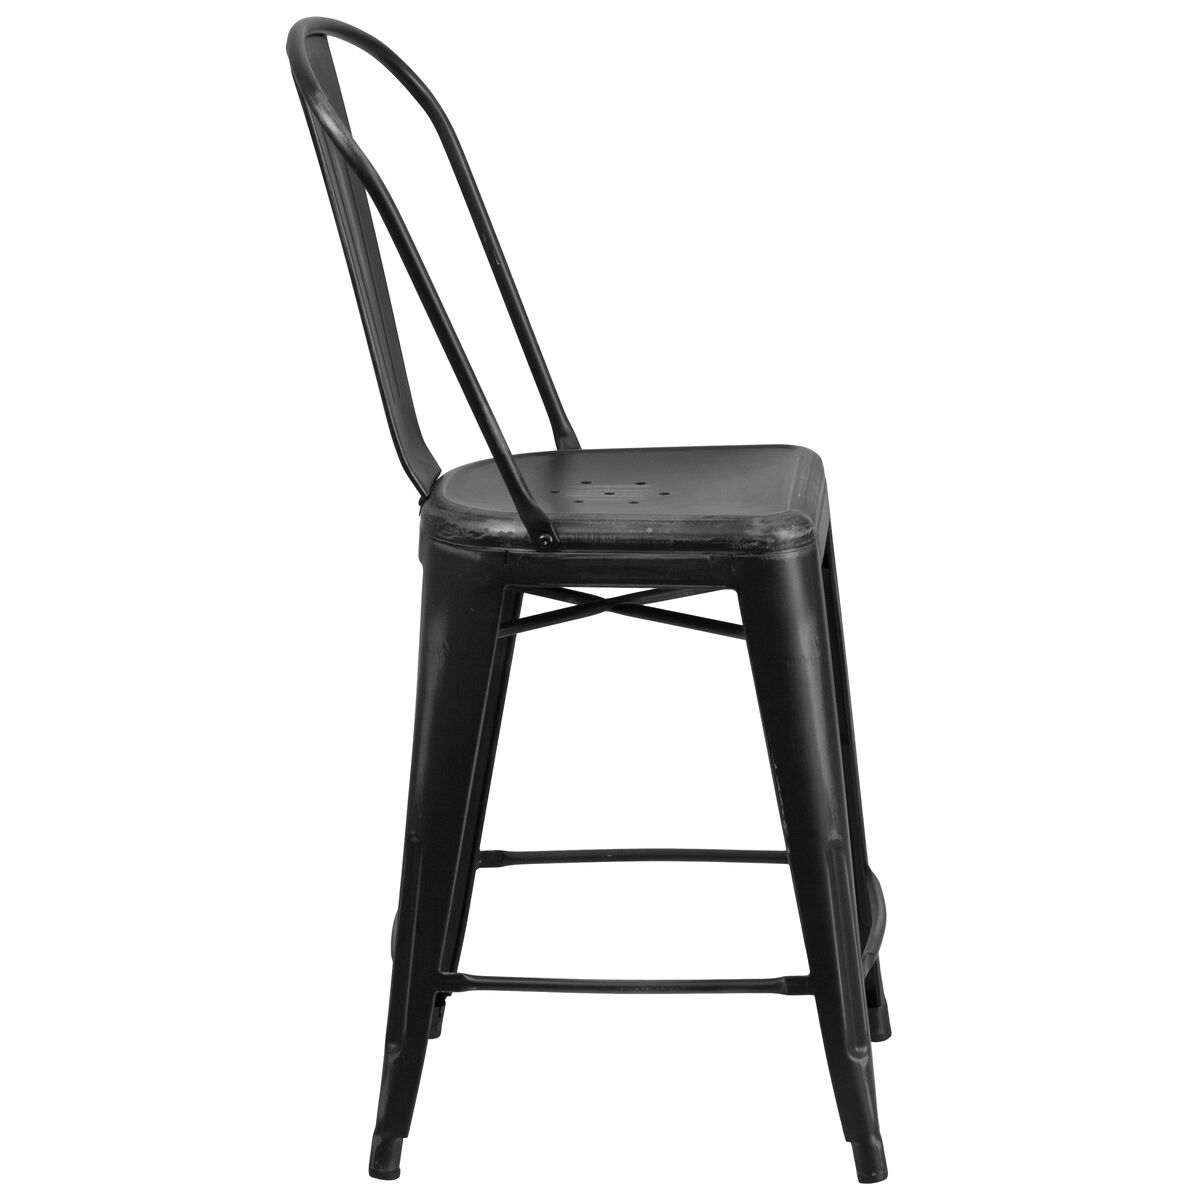 Distressed Black Metal Stool Et 3534 24 Bk Gg Churchchairs4lesscom